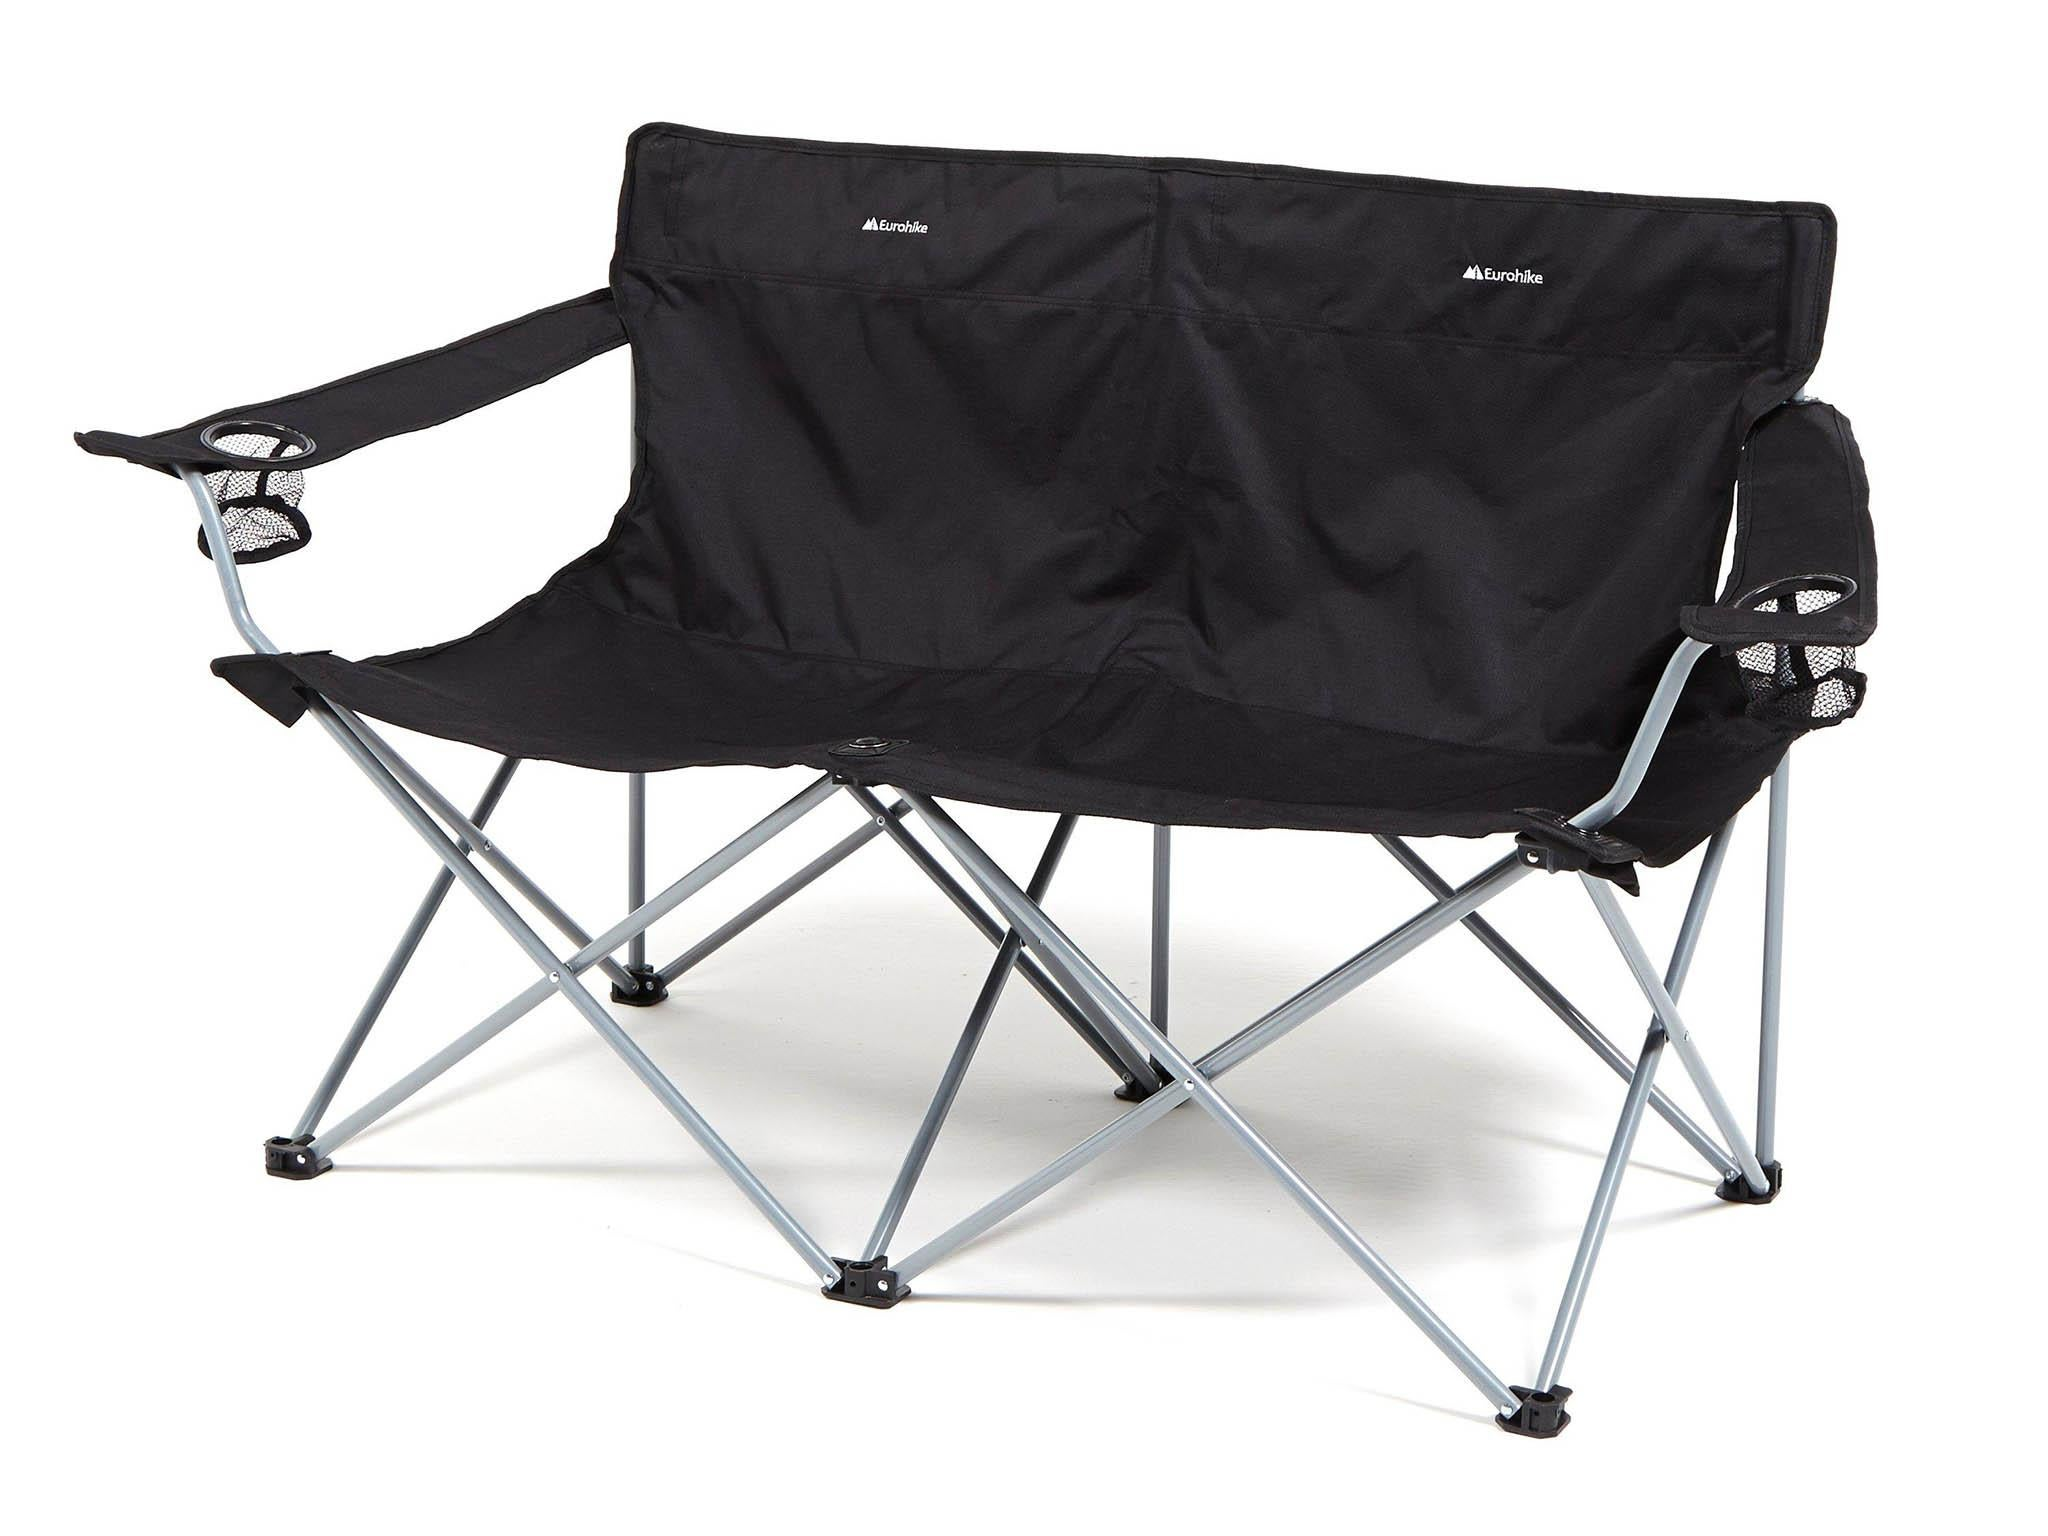 Remarkable Best Camping Chairs To Suit All Your Glamping And Festival Needs Beatyapartments Chair Design Images Beatyapartmentscom